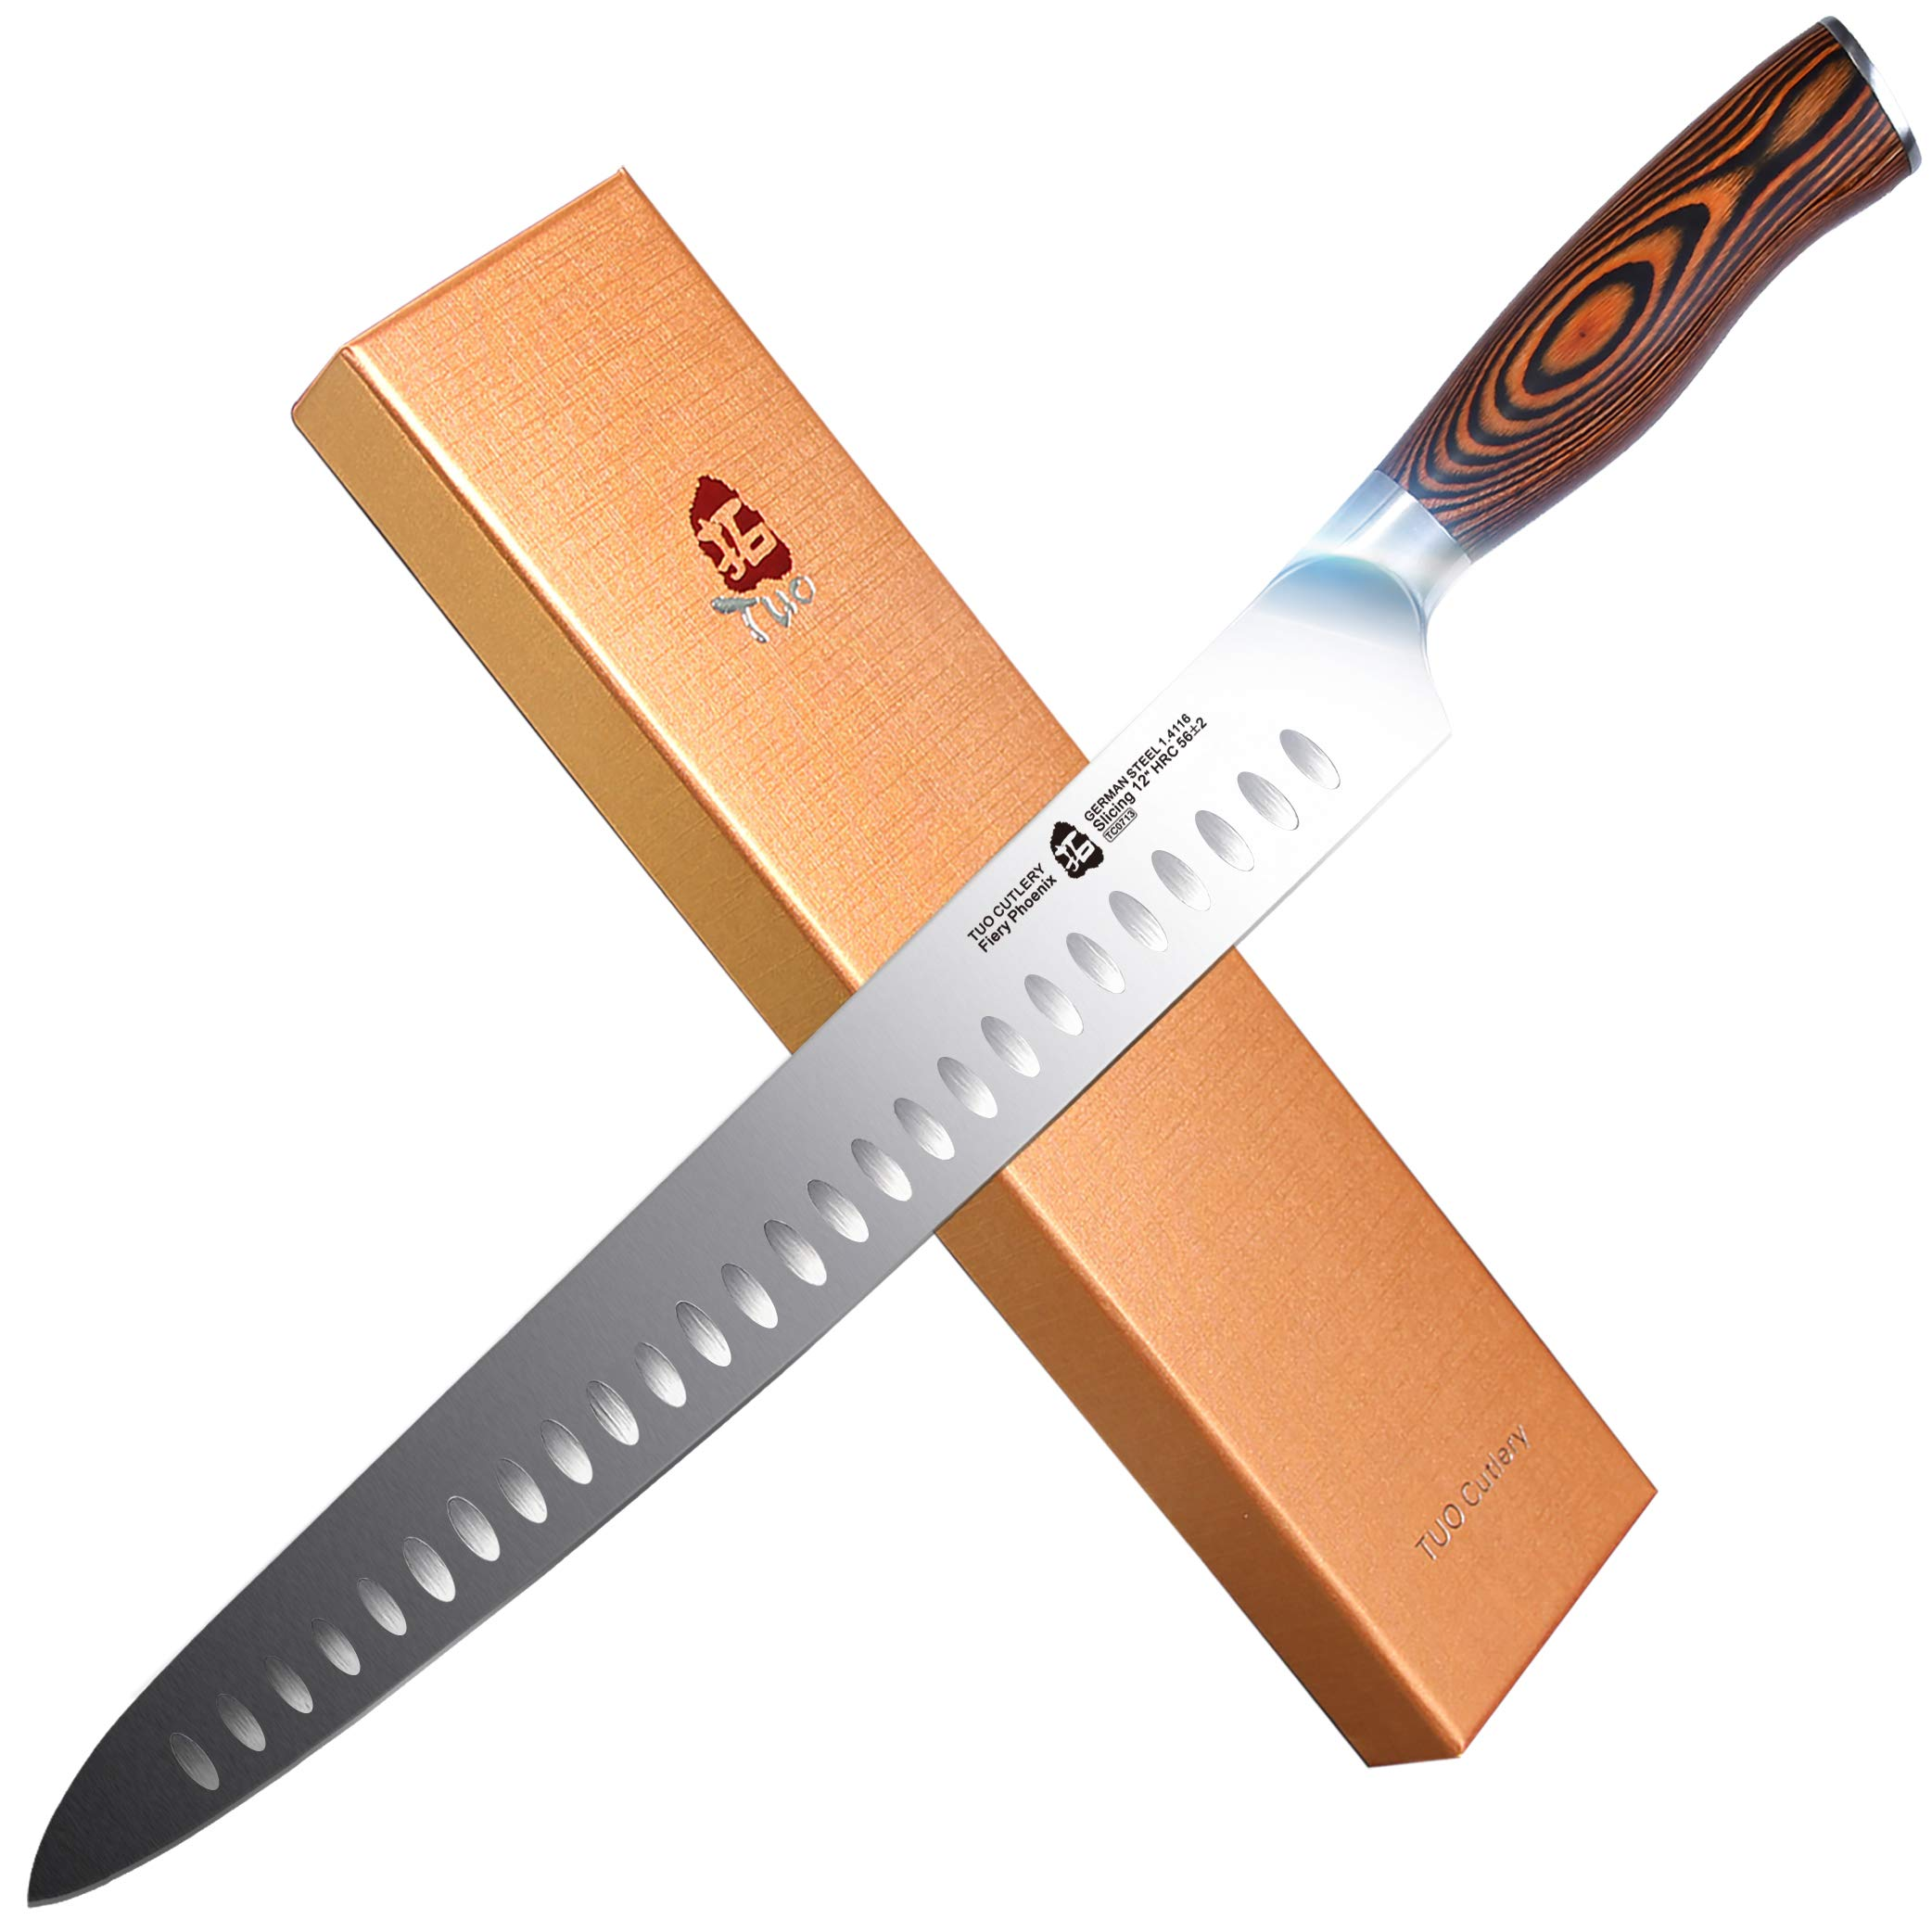 TUO Cutlery Slicing Carving Knife - HC German Stainless steel - Meat Knife with Ergonomic Pakkawood Handle - 12'' - Fiery Series by TUO